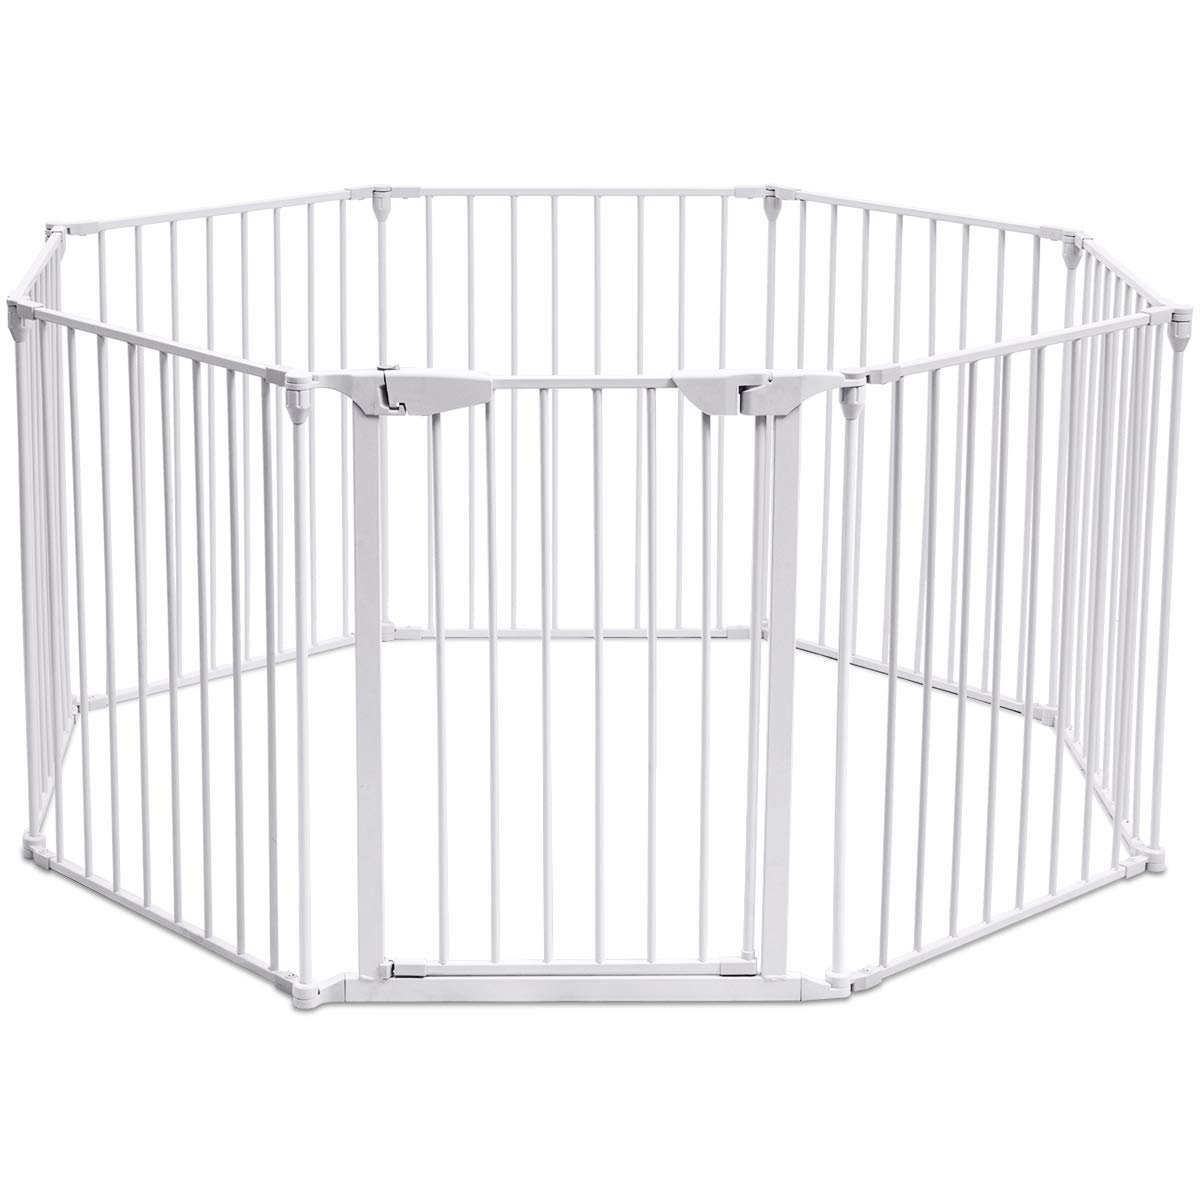 Costzon Baby Safety Gate, 3-in-1 Fireplace Fence, Wide Barrier Gate with Walk-Through Door in Two Directions, Wall-Mount Metal Gate for Pet & Child (Plastic, 8-Panel)